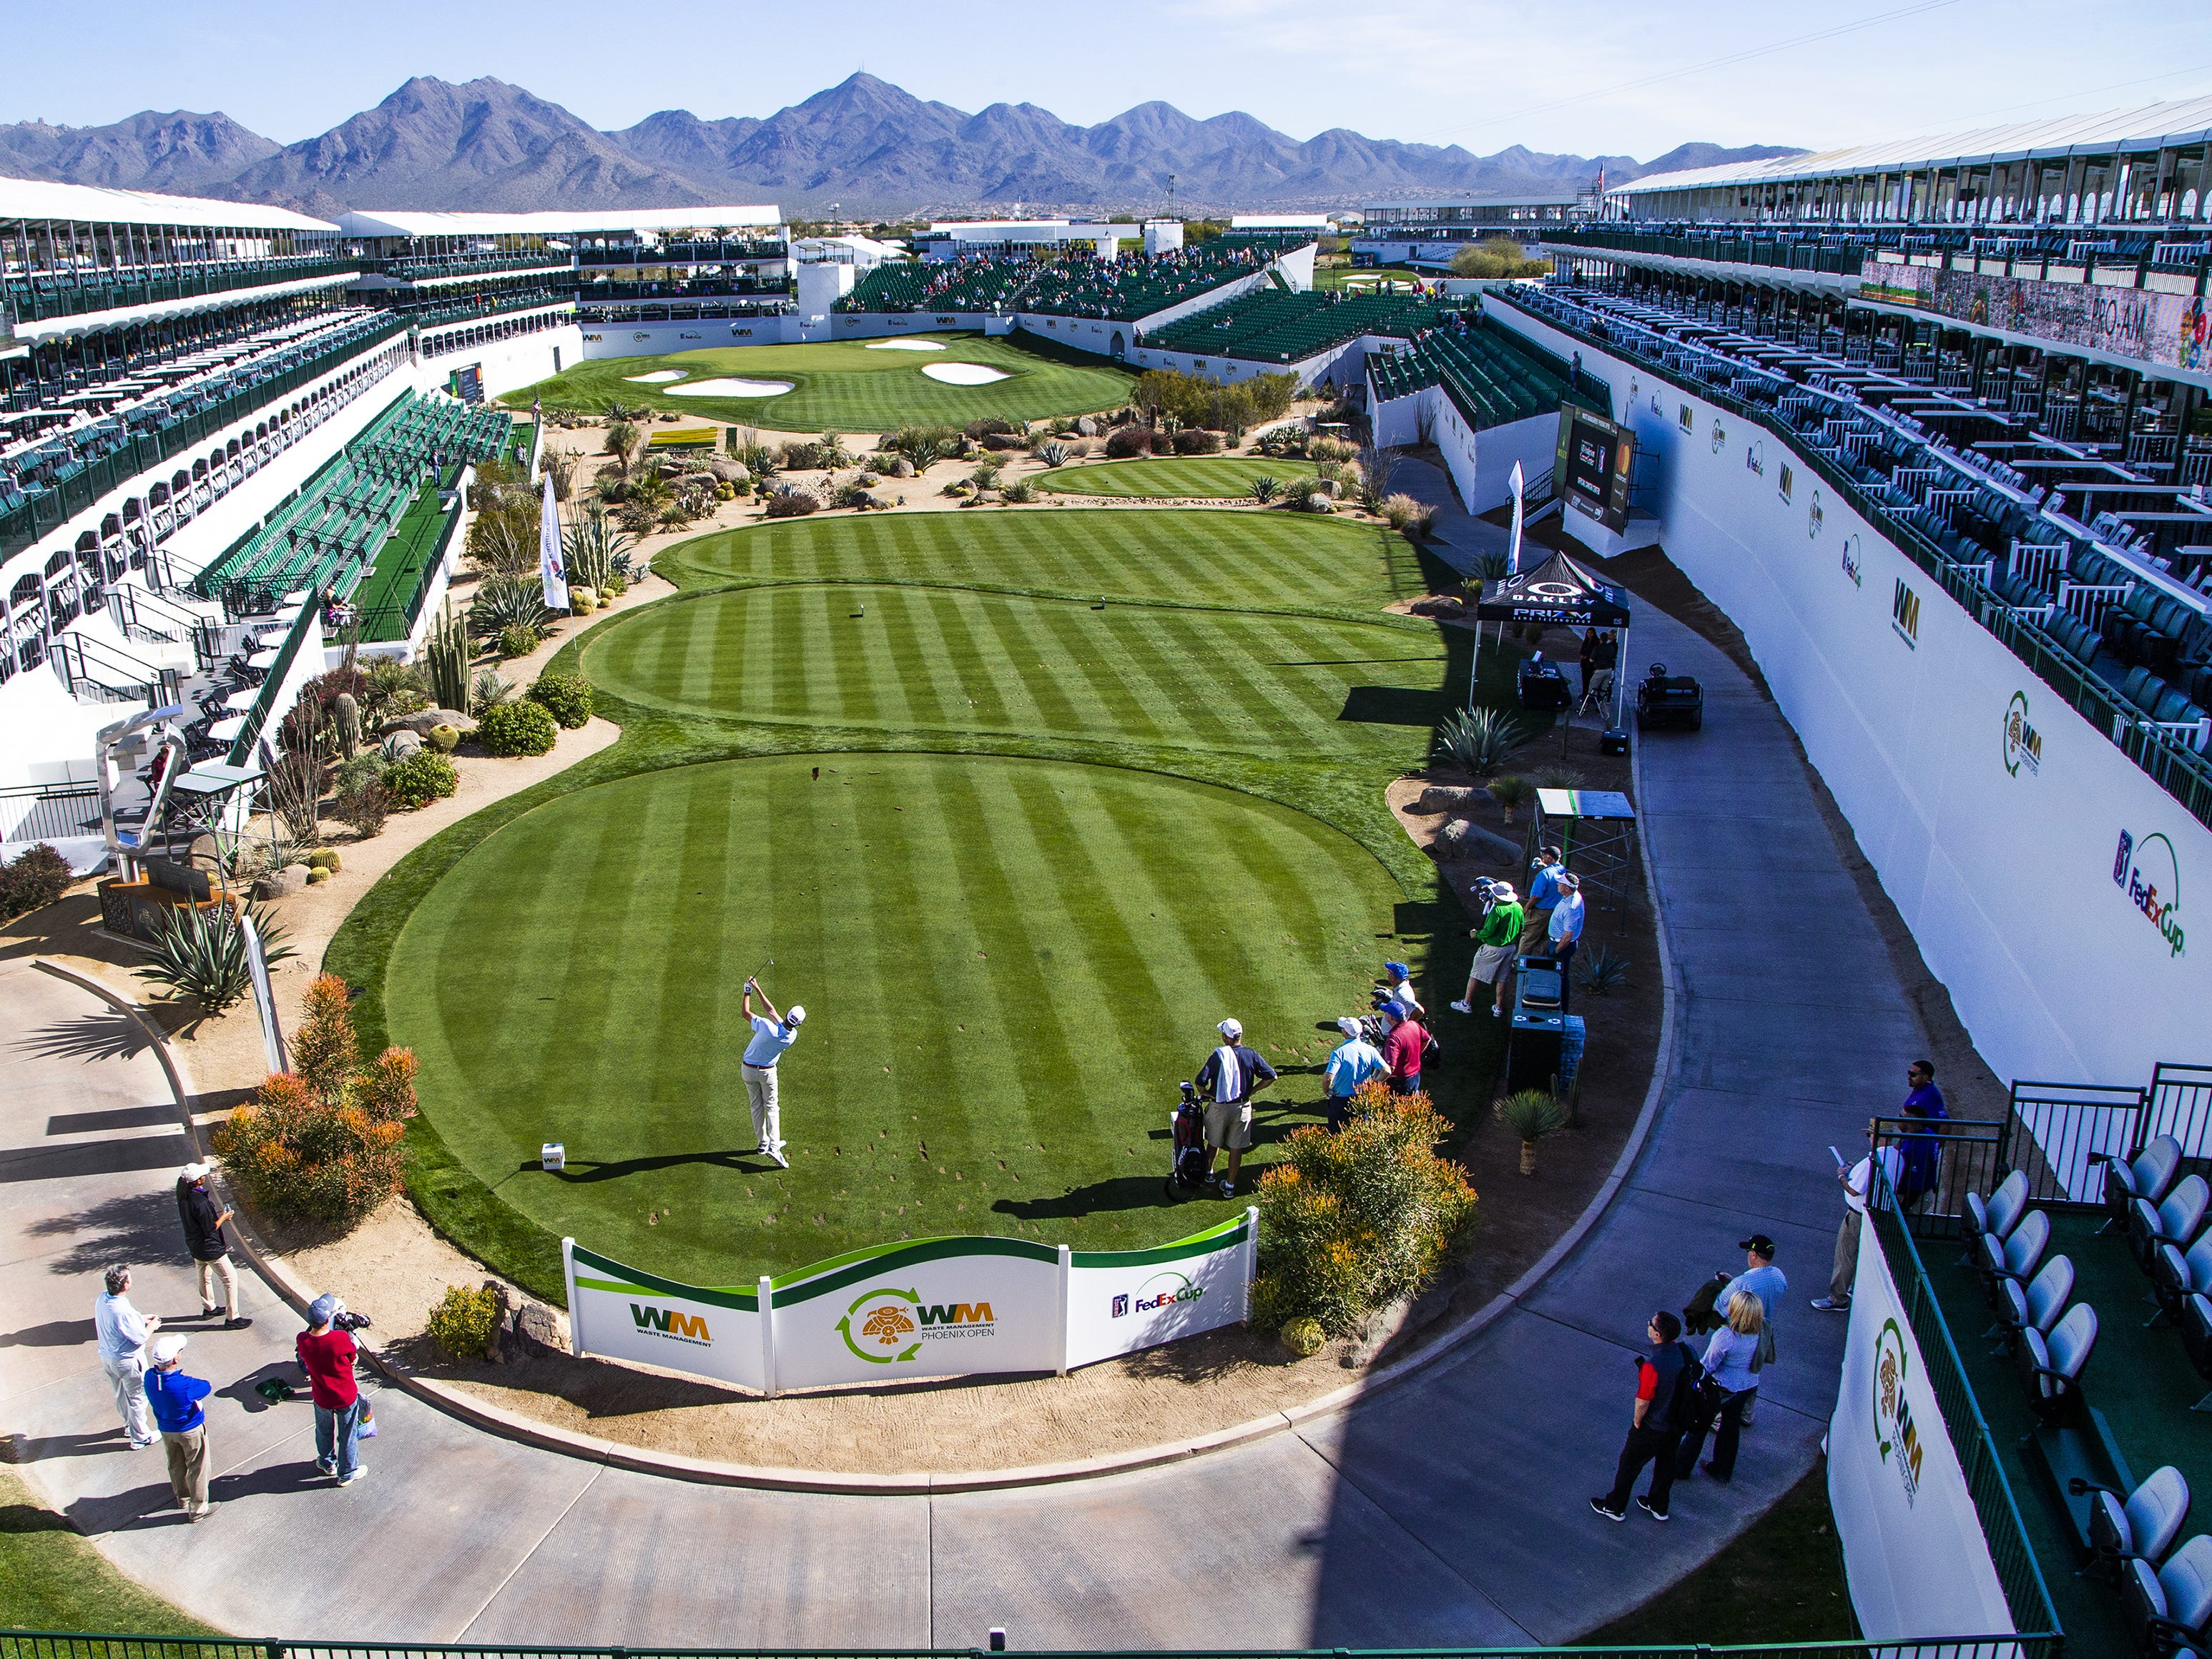 Chesson Hadley tees off on the 16th hole during the Kadima.Ventures Pro-Am at the Waste Management Phoenix Open at the TPC Scottsdale, Monday, January 28, 2019.